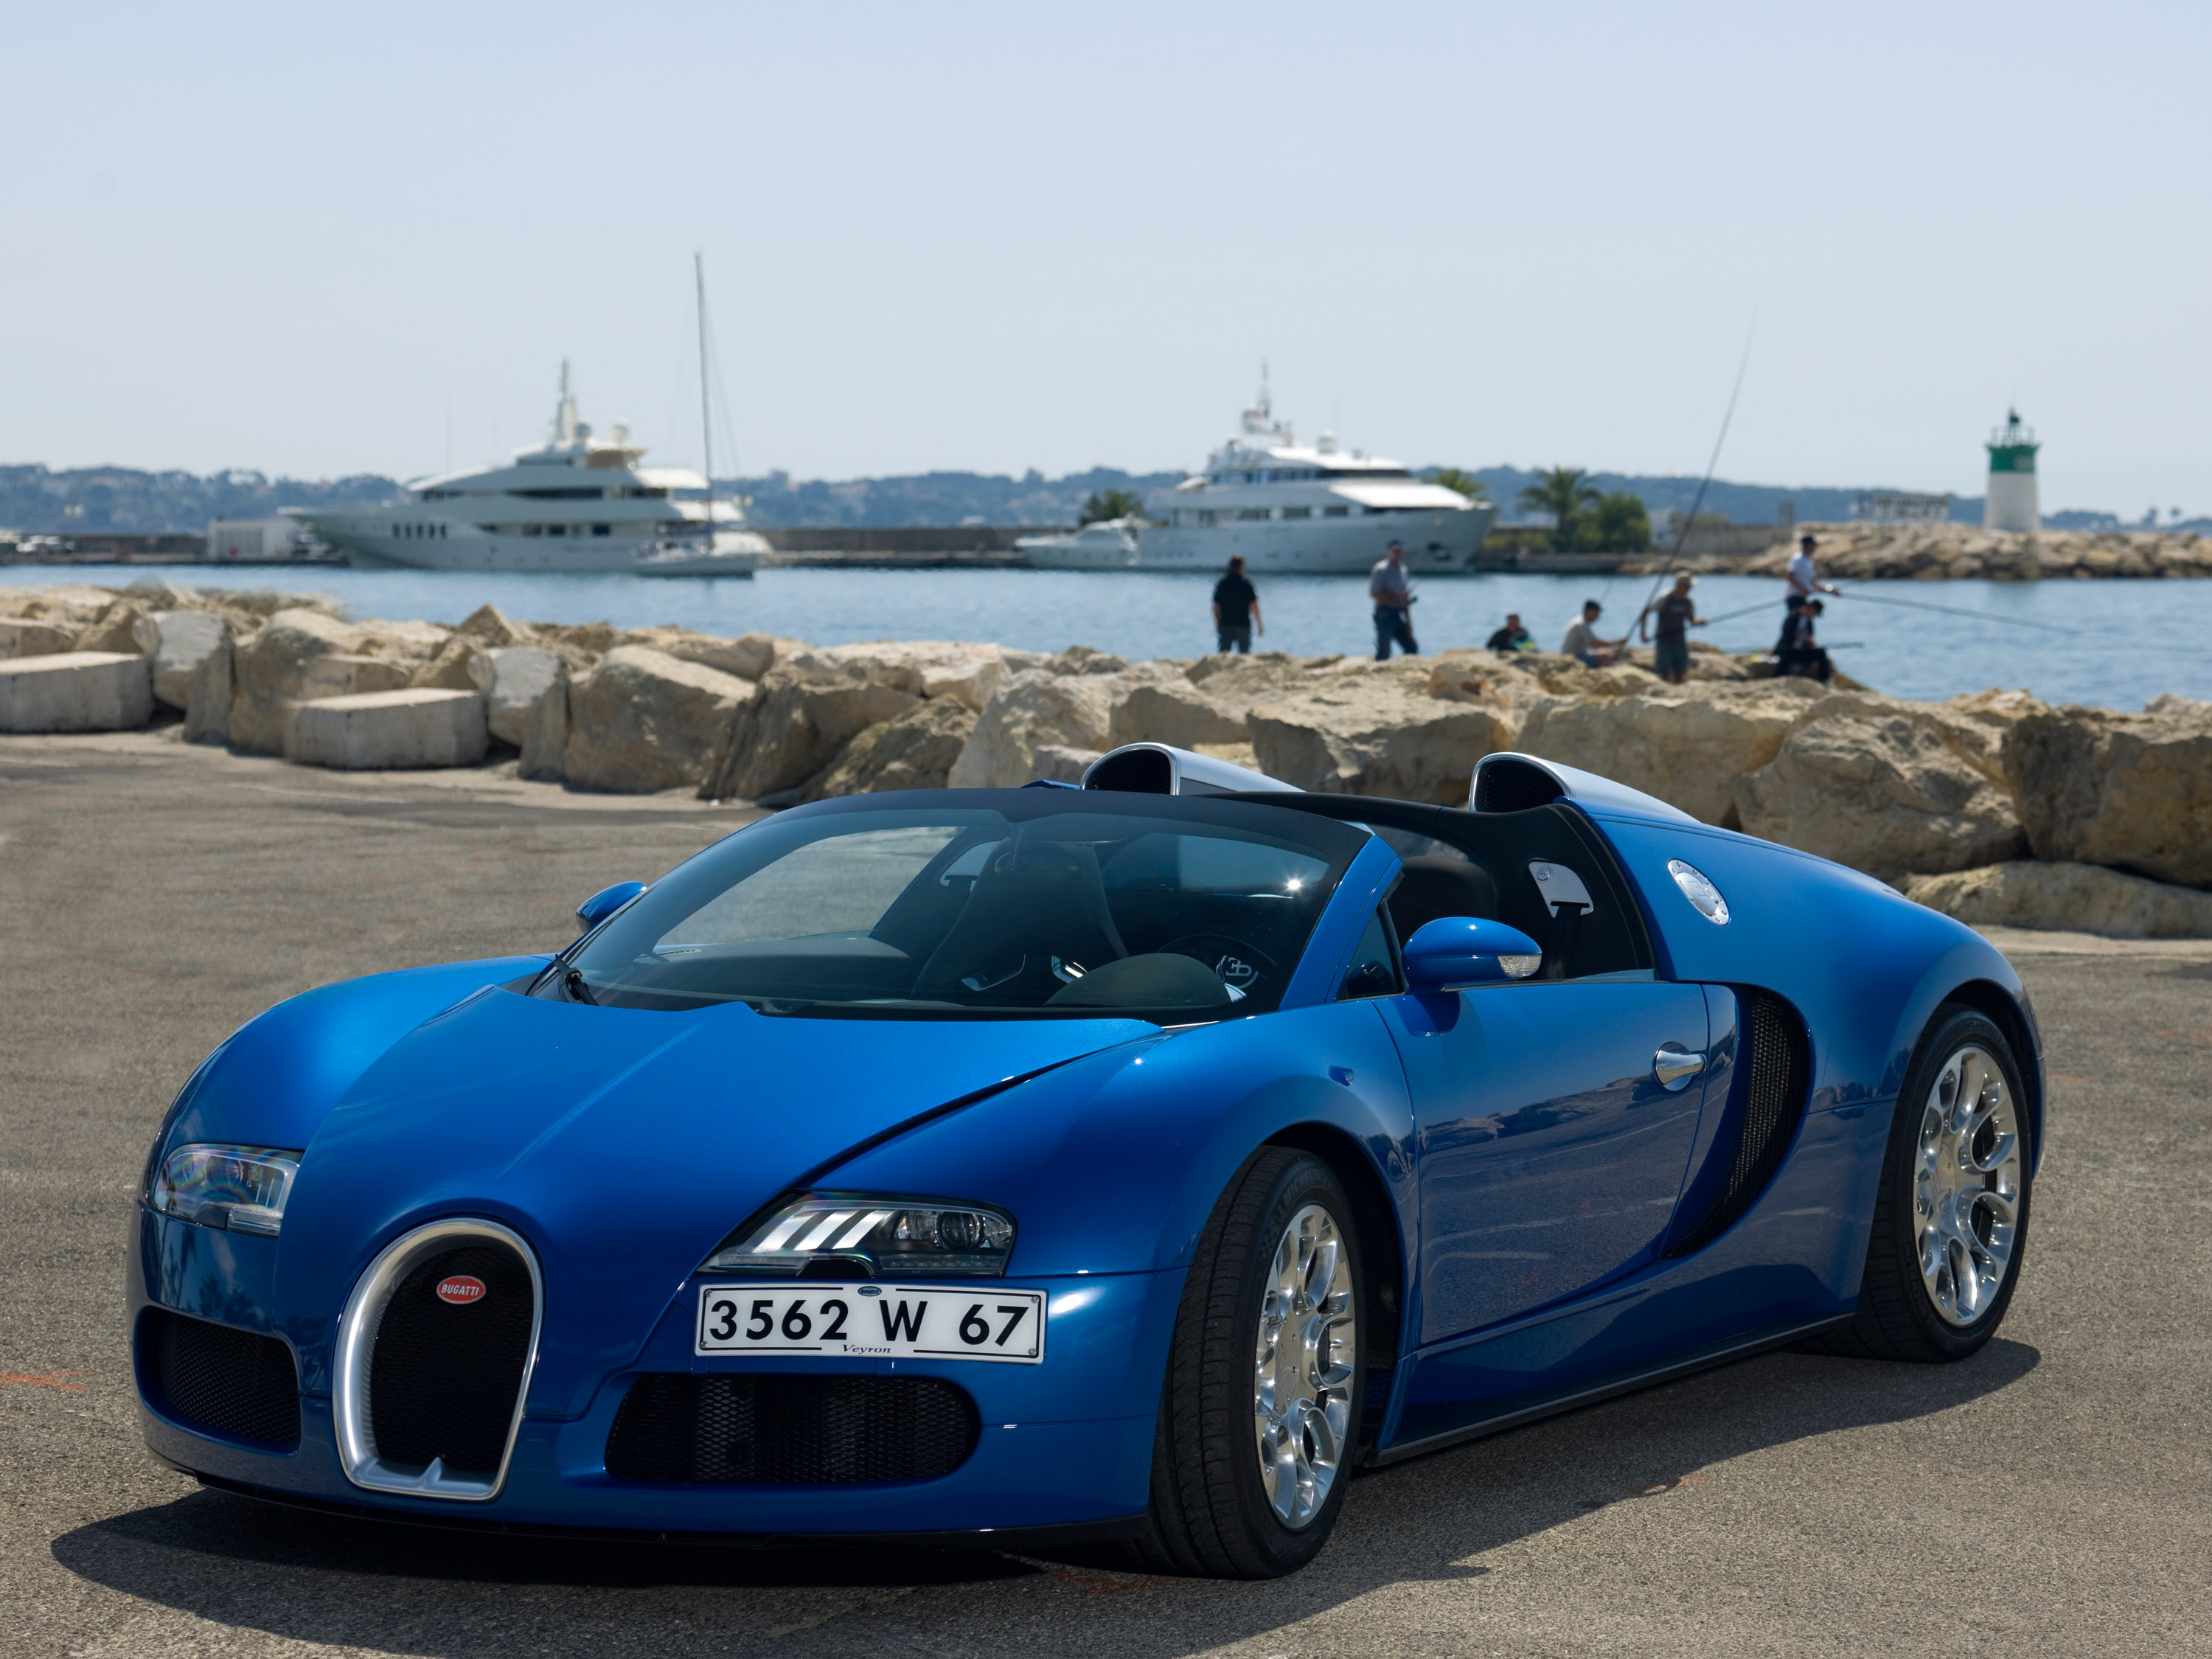 2009-bugatti-veyron-16-4-grand-sport-cannes-03 Remarkable Bugatti Veyron Grand Sport Vitesse Black and Blue Cars Trend